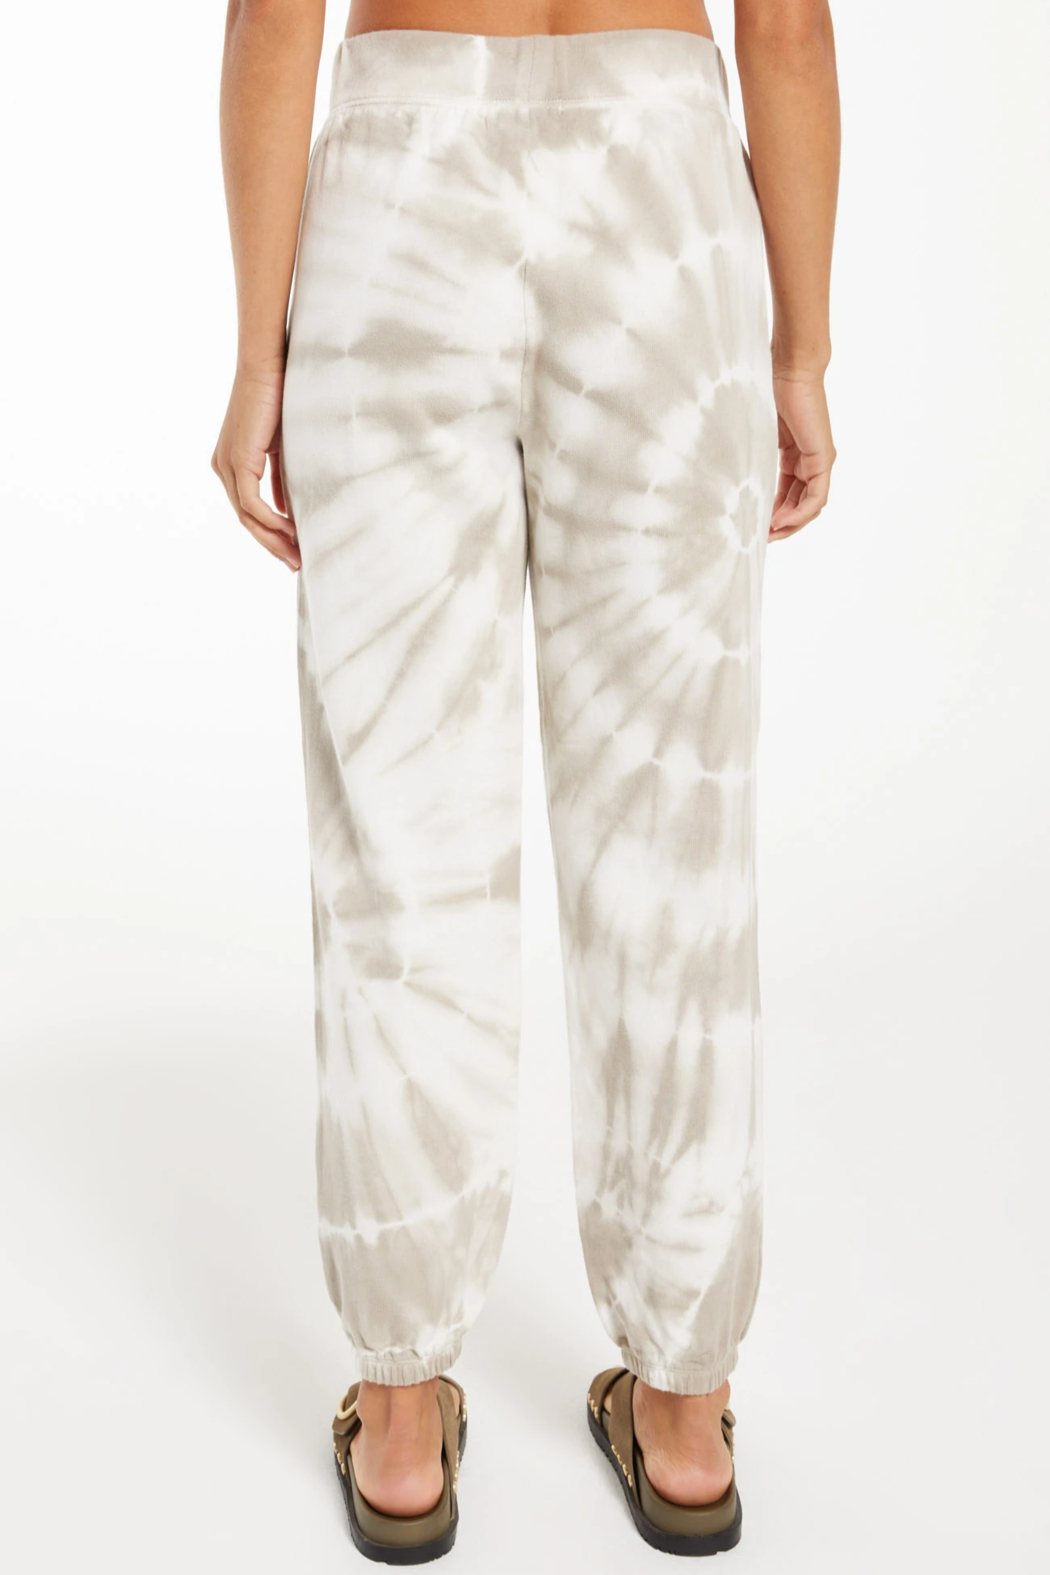 z supply Emery Spiral Tie-Dye Jogger - Side Cropped Image